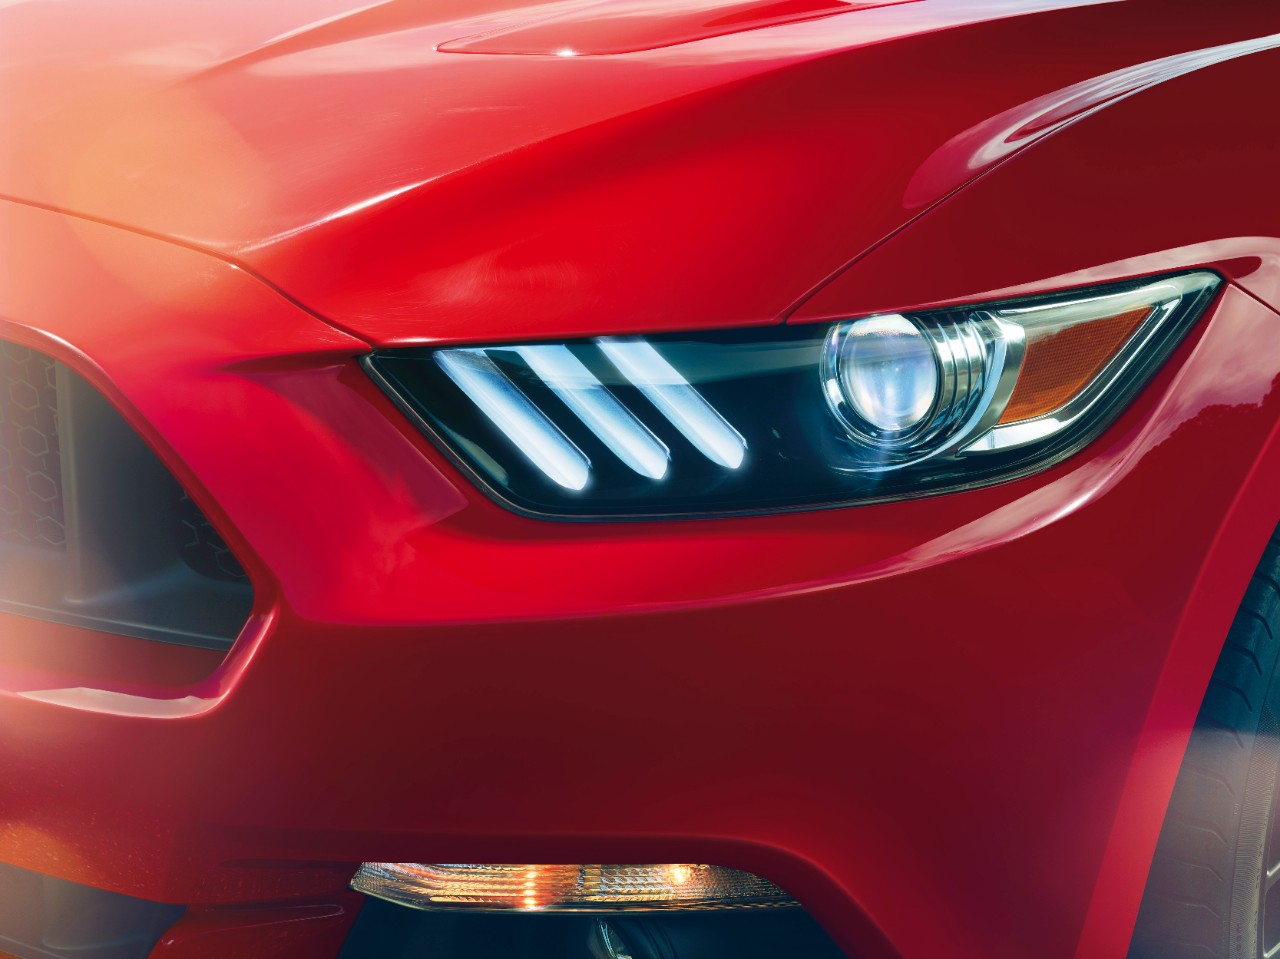 2015-ford-mustang_100448875_h